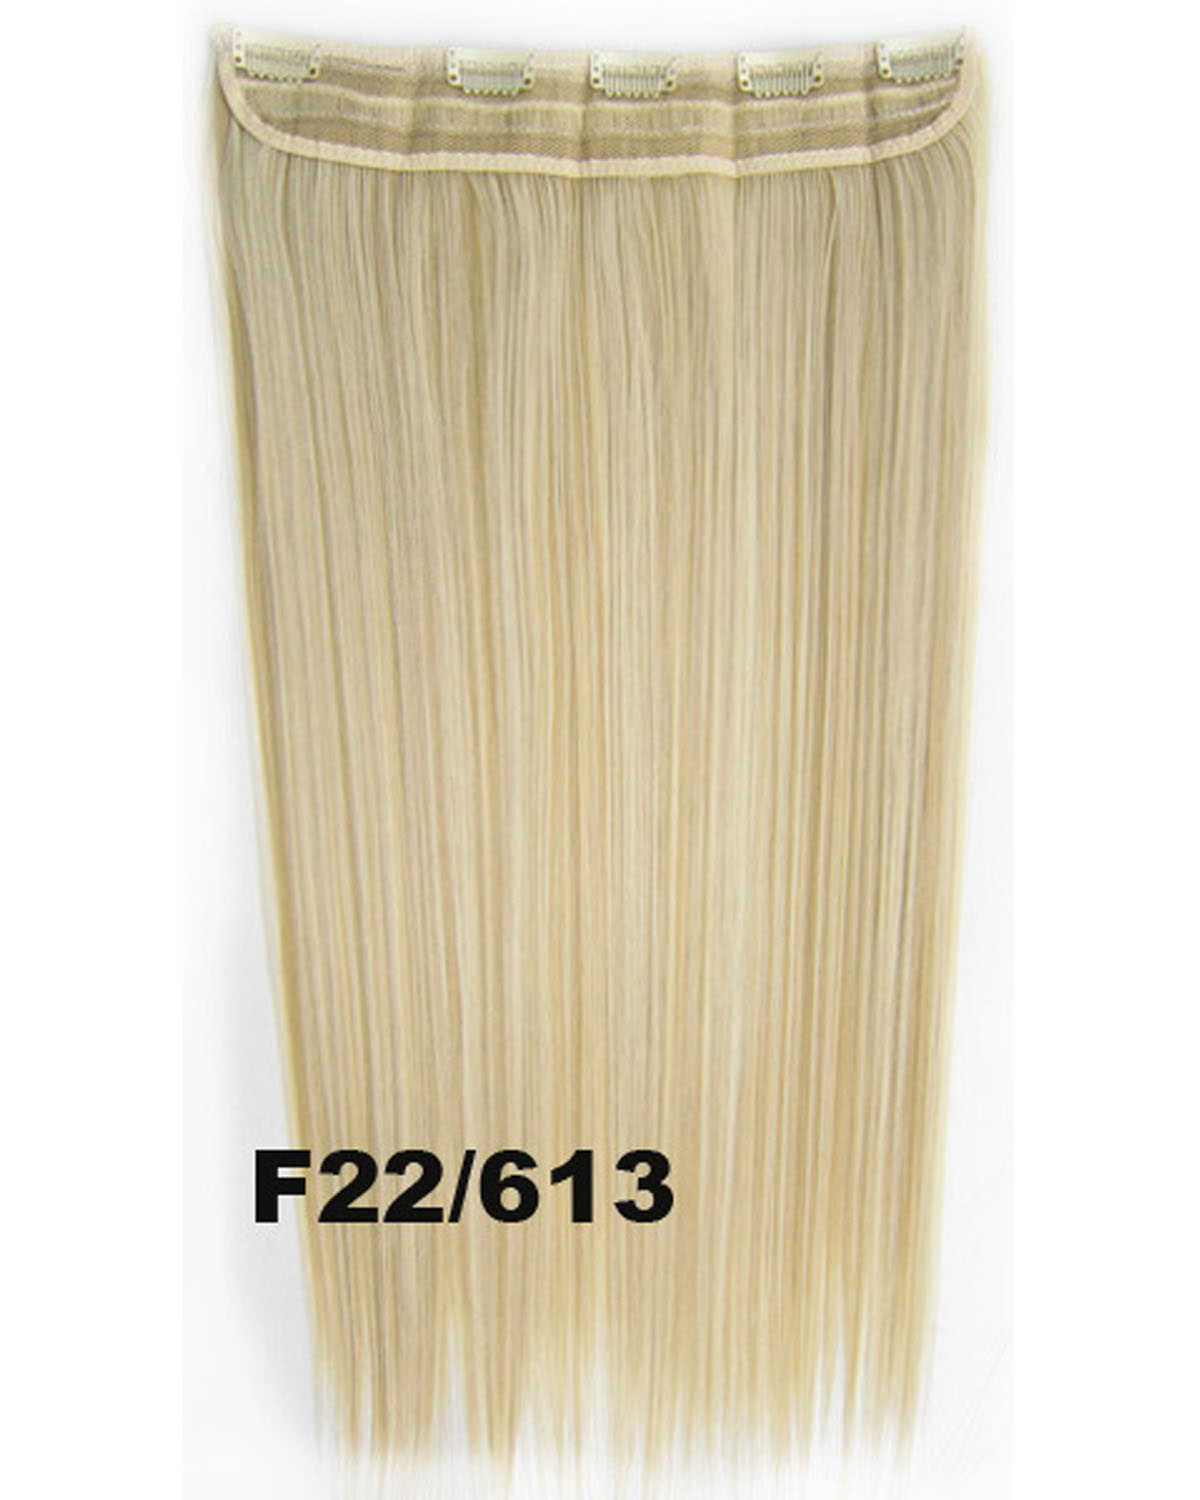 24 Inch Female Tempting Straight Long One Piece 5 Clips Clip in Synthetic Hair Extension F22/613